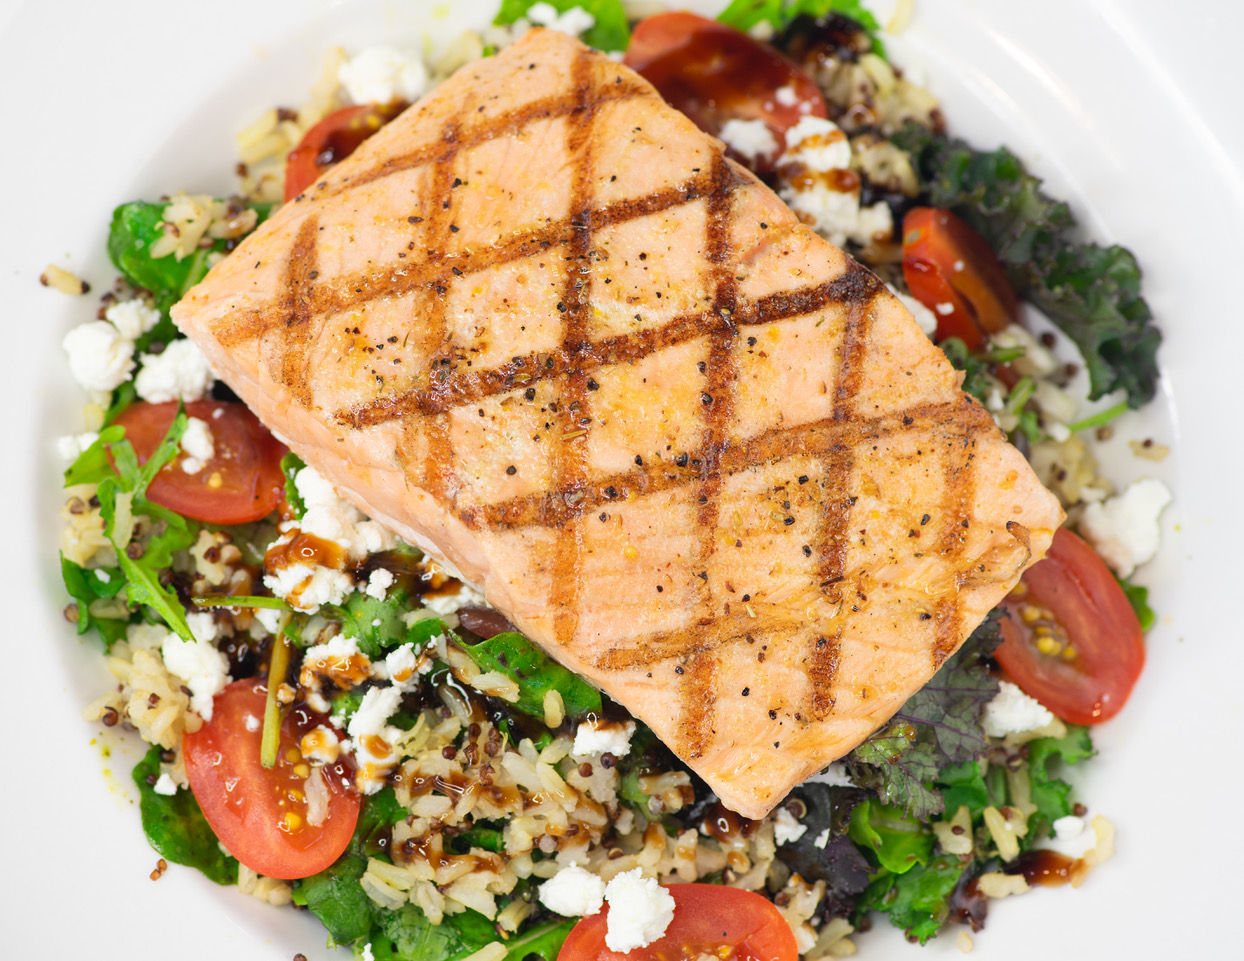 Kale Pesto Salmon, Brown Rice, Quinoa, Goat Cheese, Baby Kale, Tomatoes, Balsamic Glaze